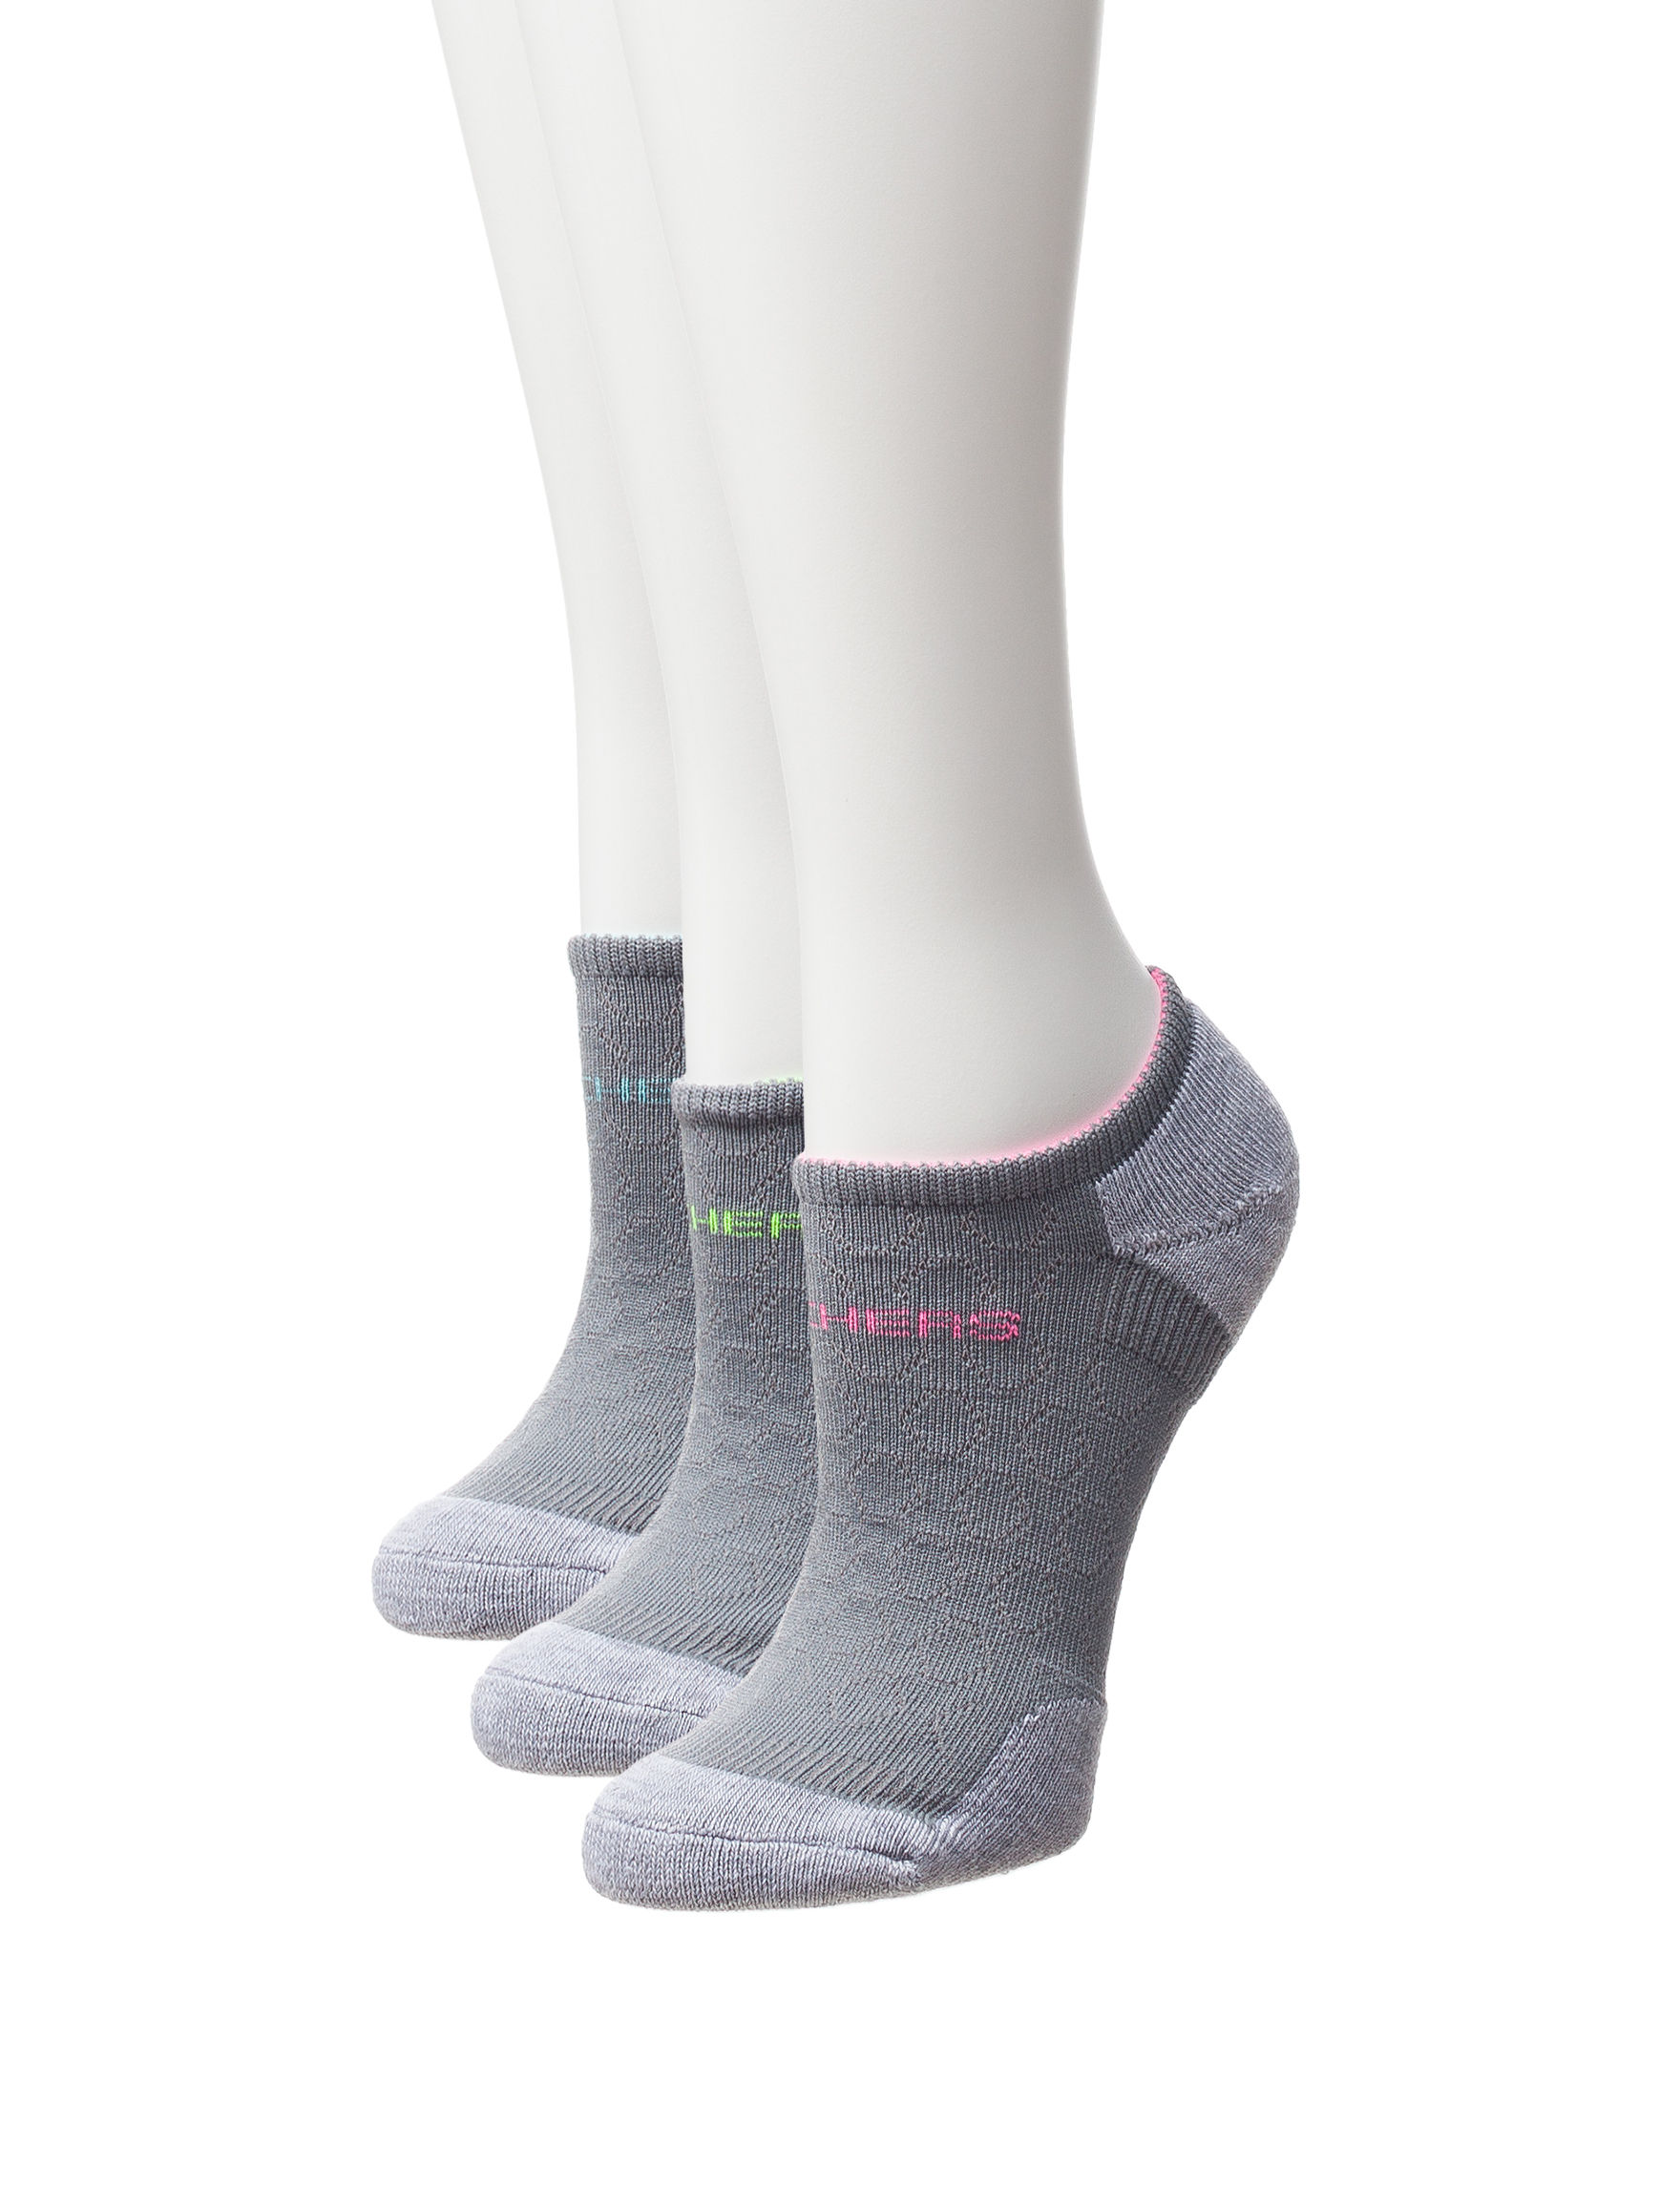 Skechers Grey Socks